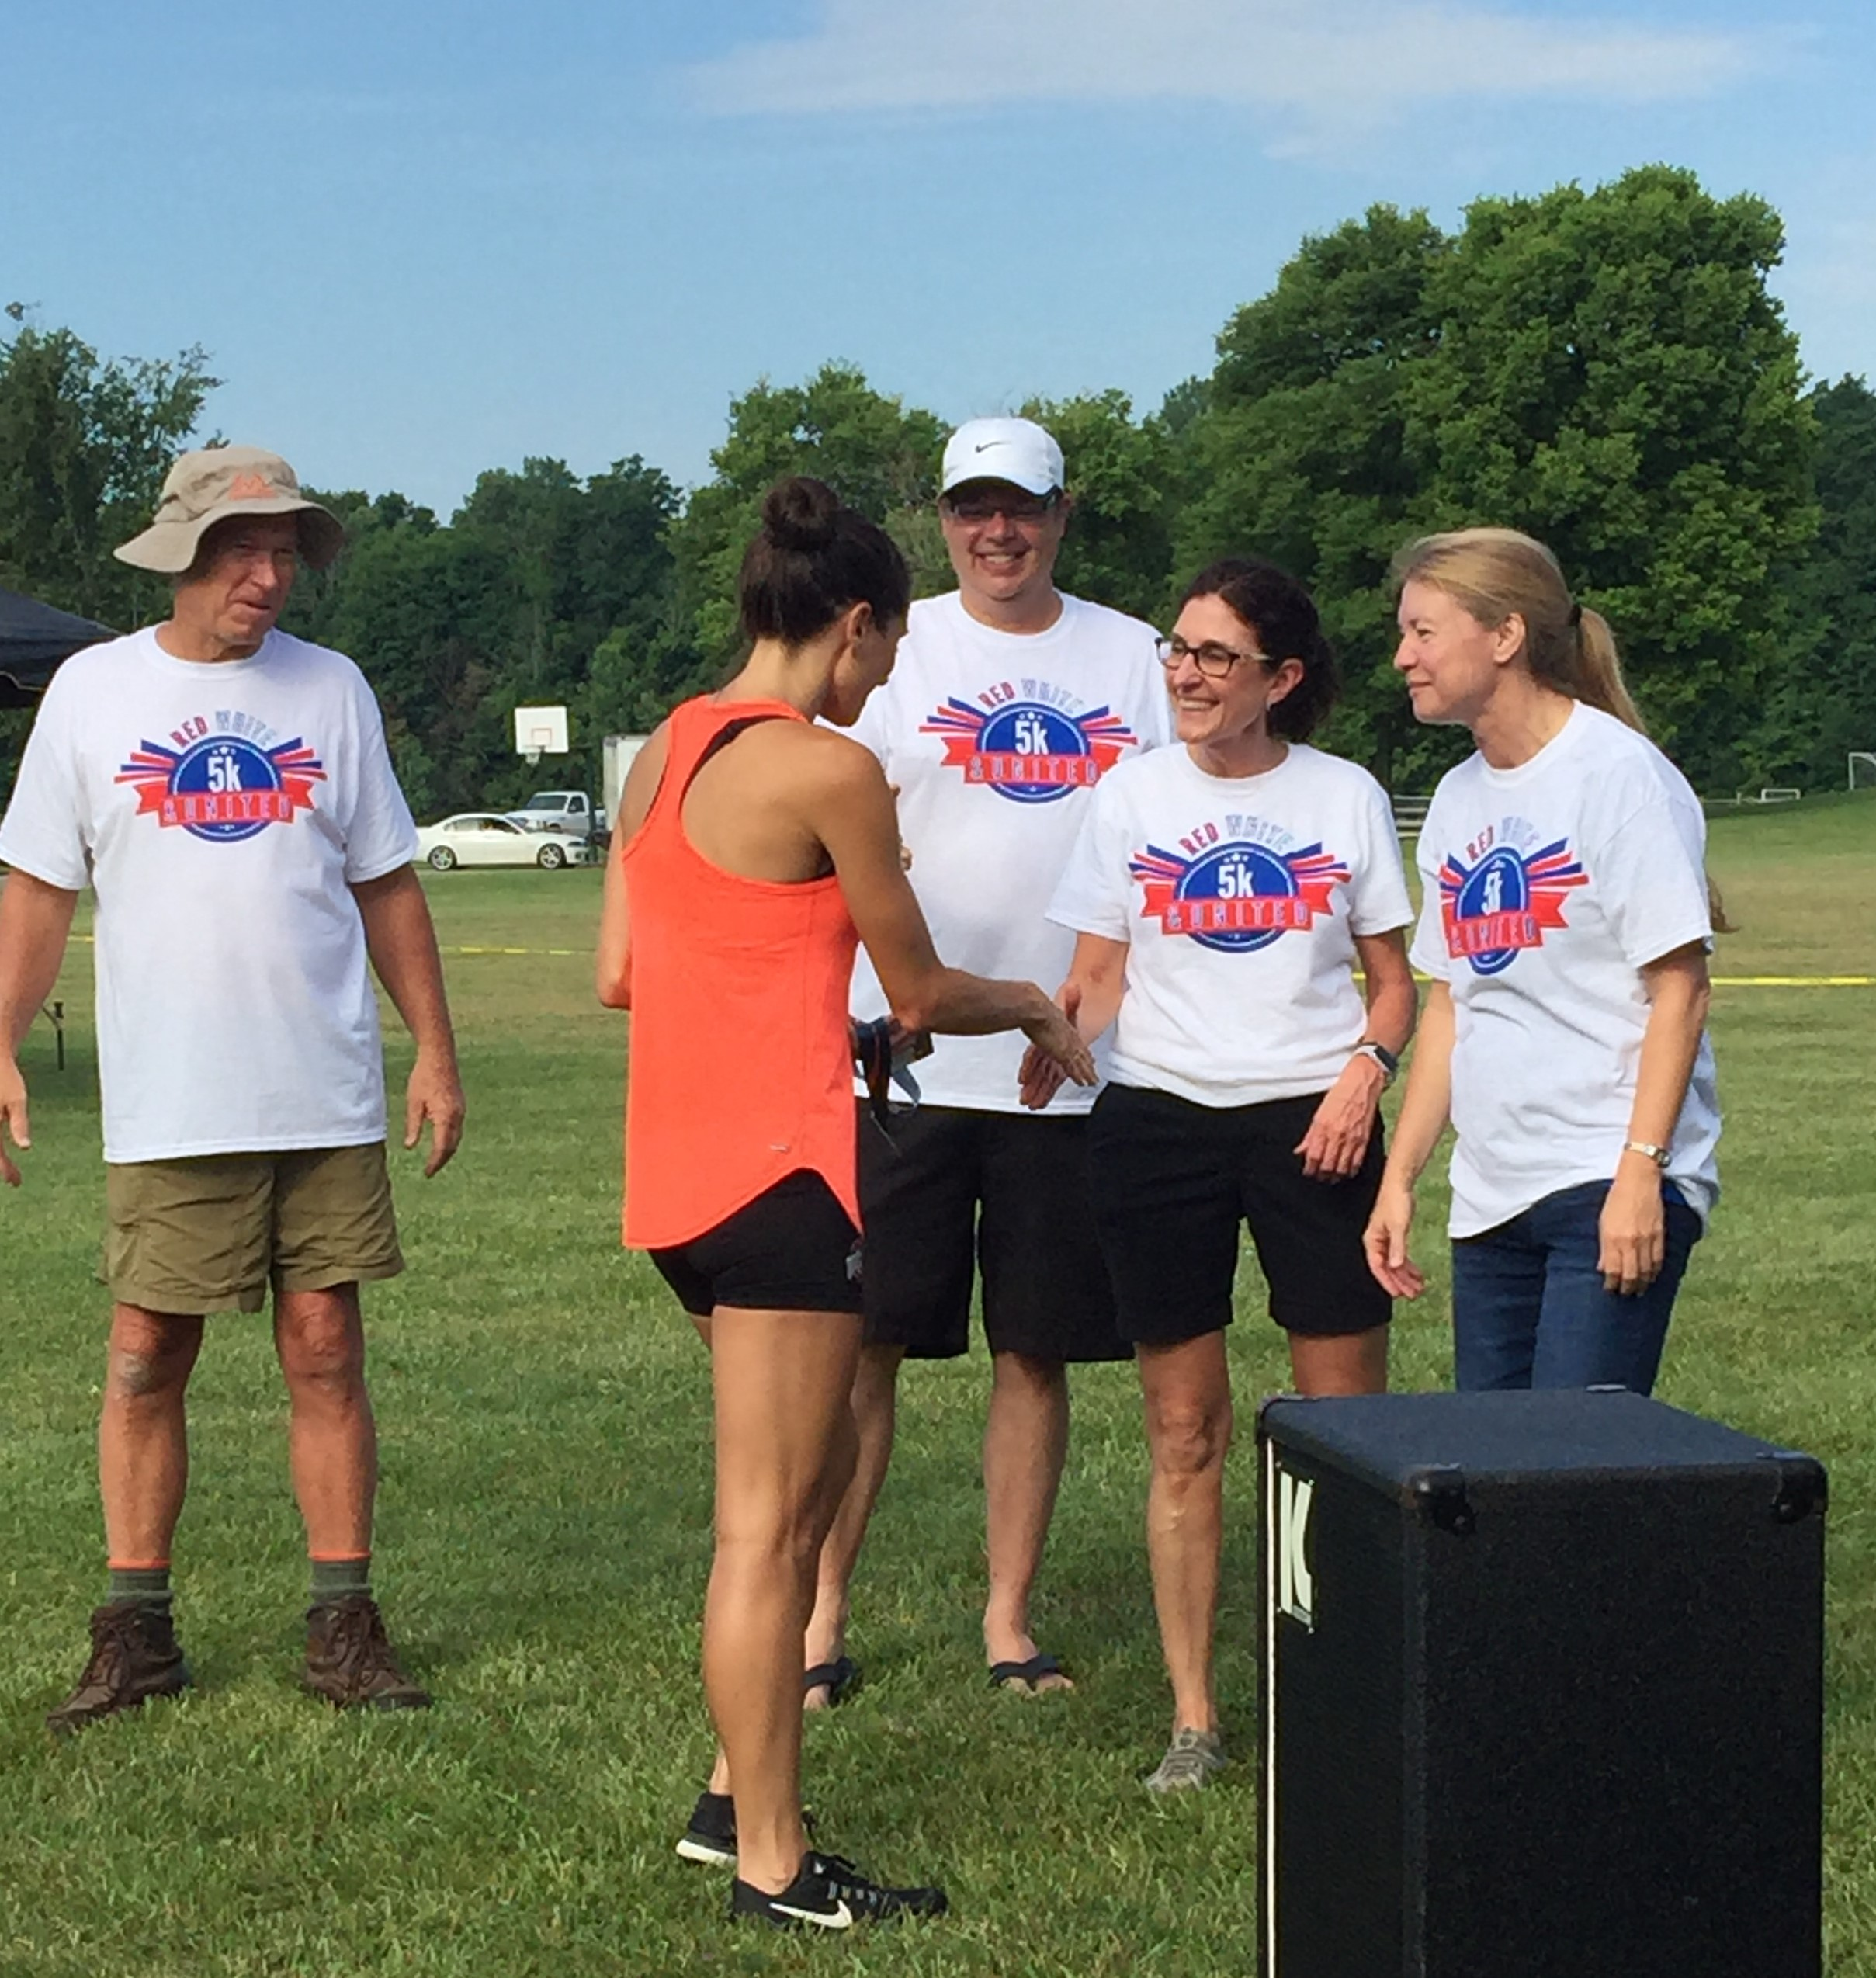 Awards Ceremony - Red, White & United 5k - United Way of Licking County Ohio - USA Race Timing & Event Management